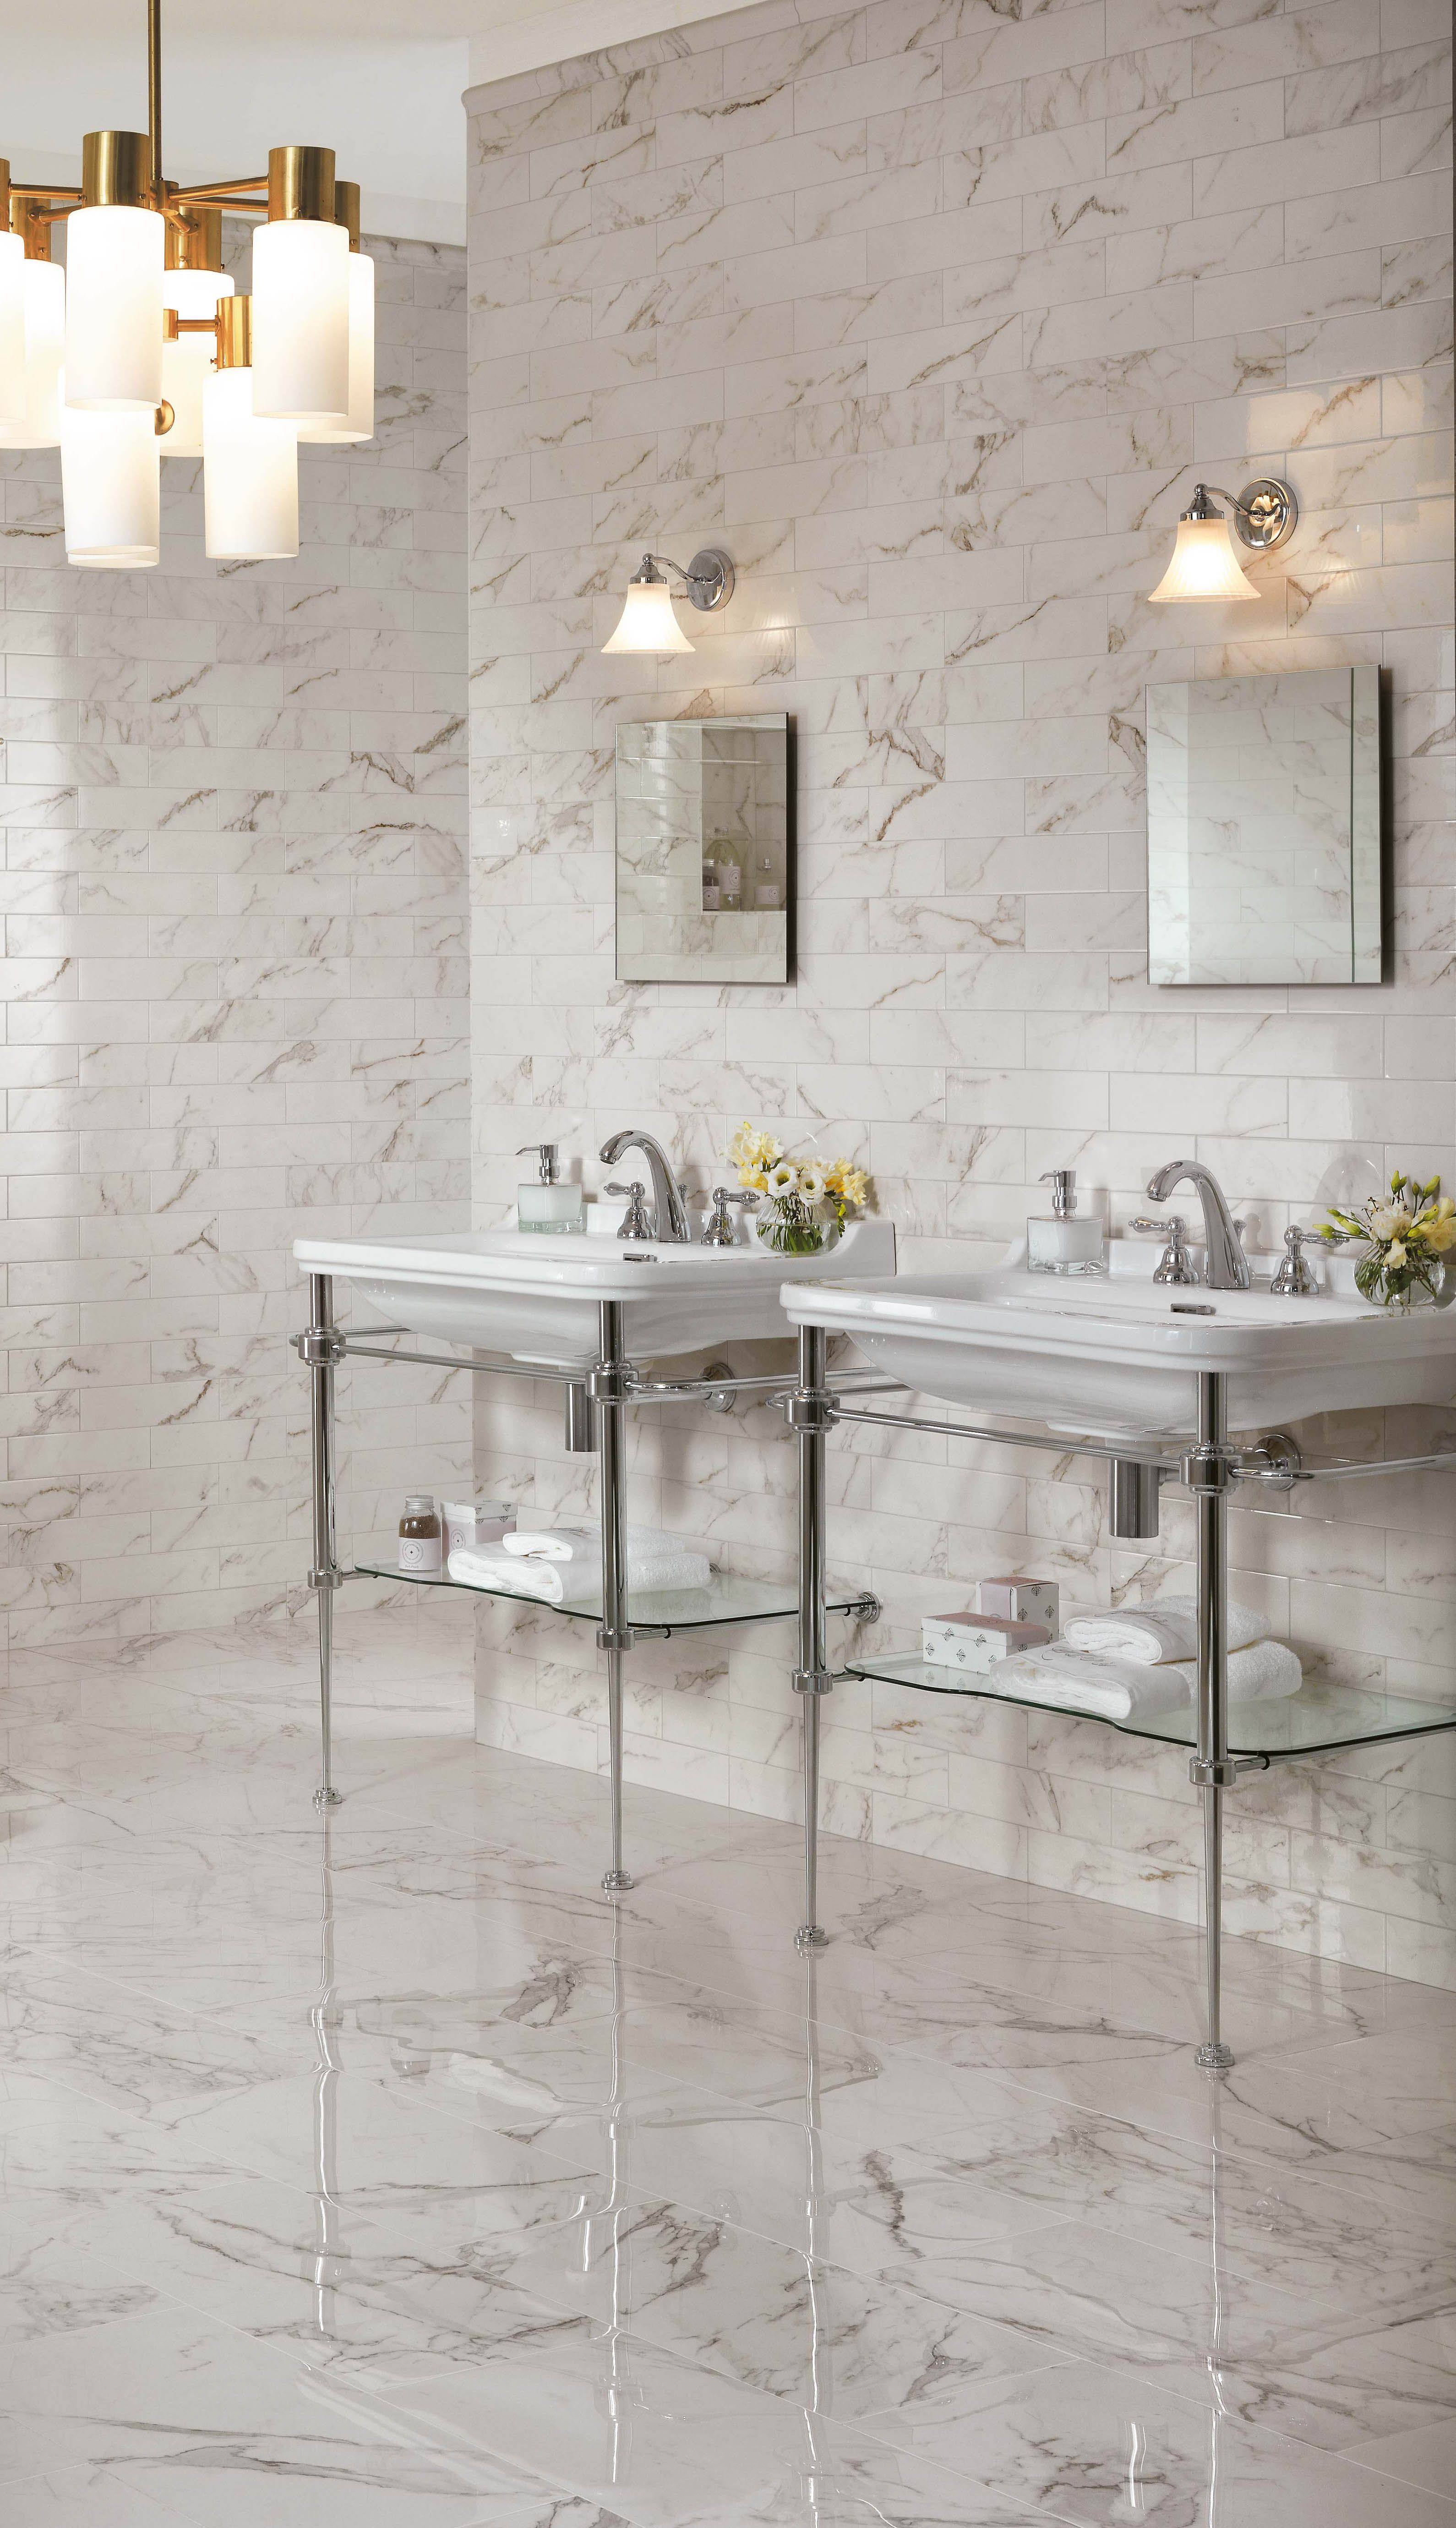 Exquisite And Refined, The Brick Atelier Collection Offers A Beautiful  Ceramic Coating For Interior Decoration